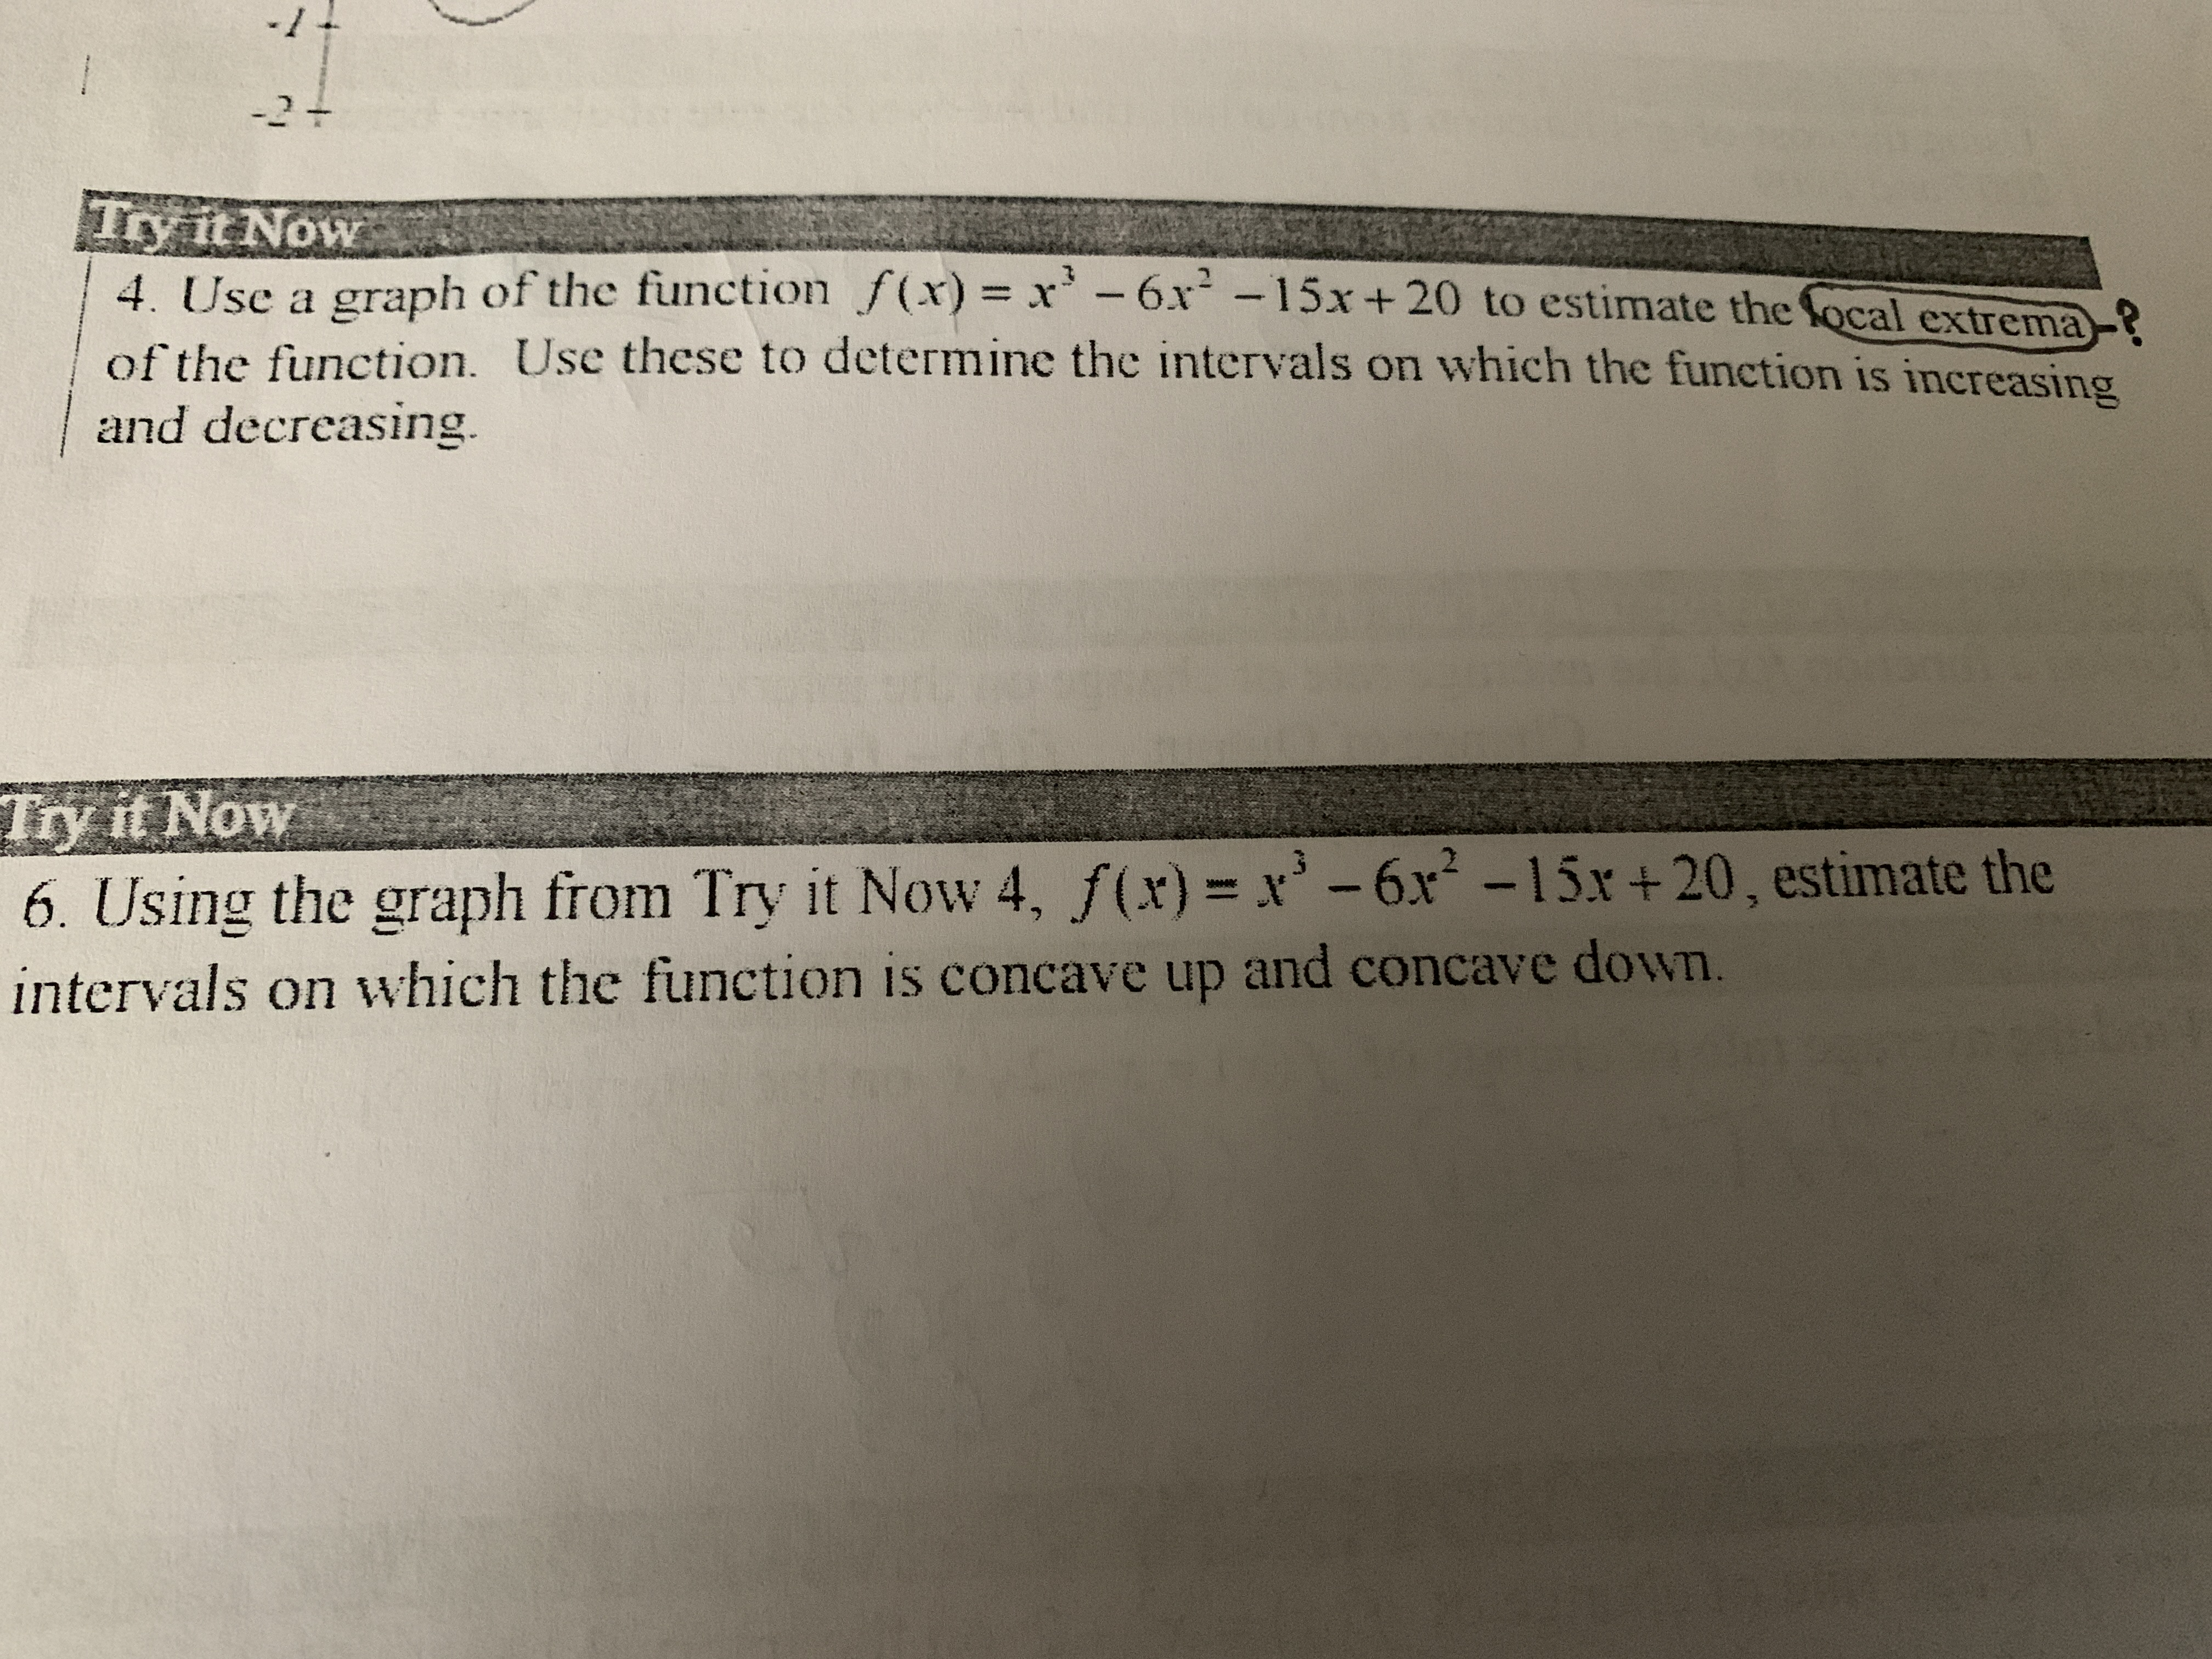 -11 -2+ Try it Now 4. Use a graph of the function f(x)= x -6x-15x + 20 to estimate the focal extrema? of the function. Use these to determine the intervals on which the function is increasing and decreasing. Try it Now 6. Using the graph from Try it Now 4, f(x)= x-6x -15x+20, estimate the intervals on which the function is concave up and concave down.